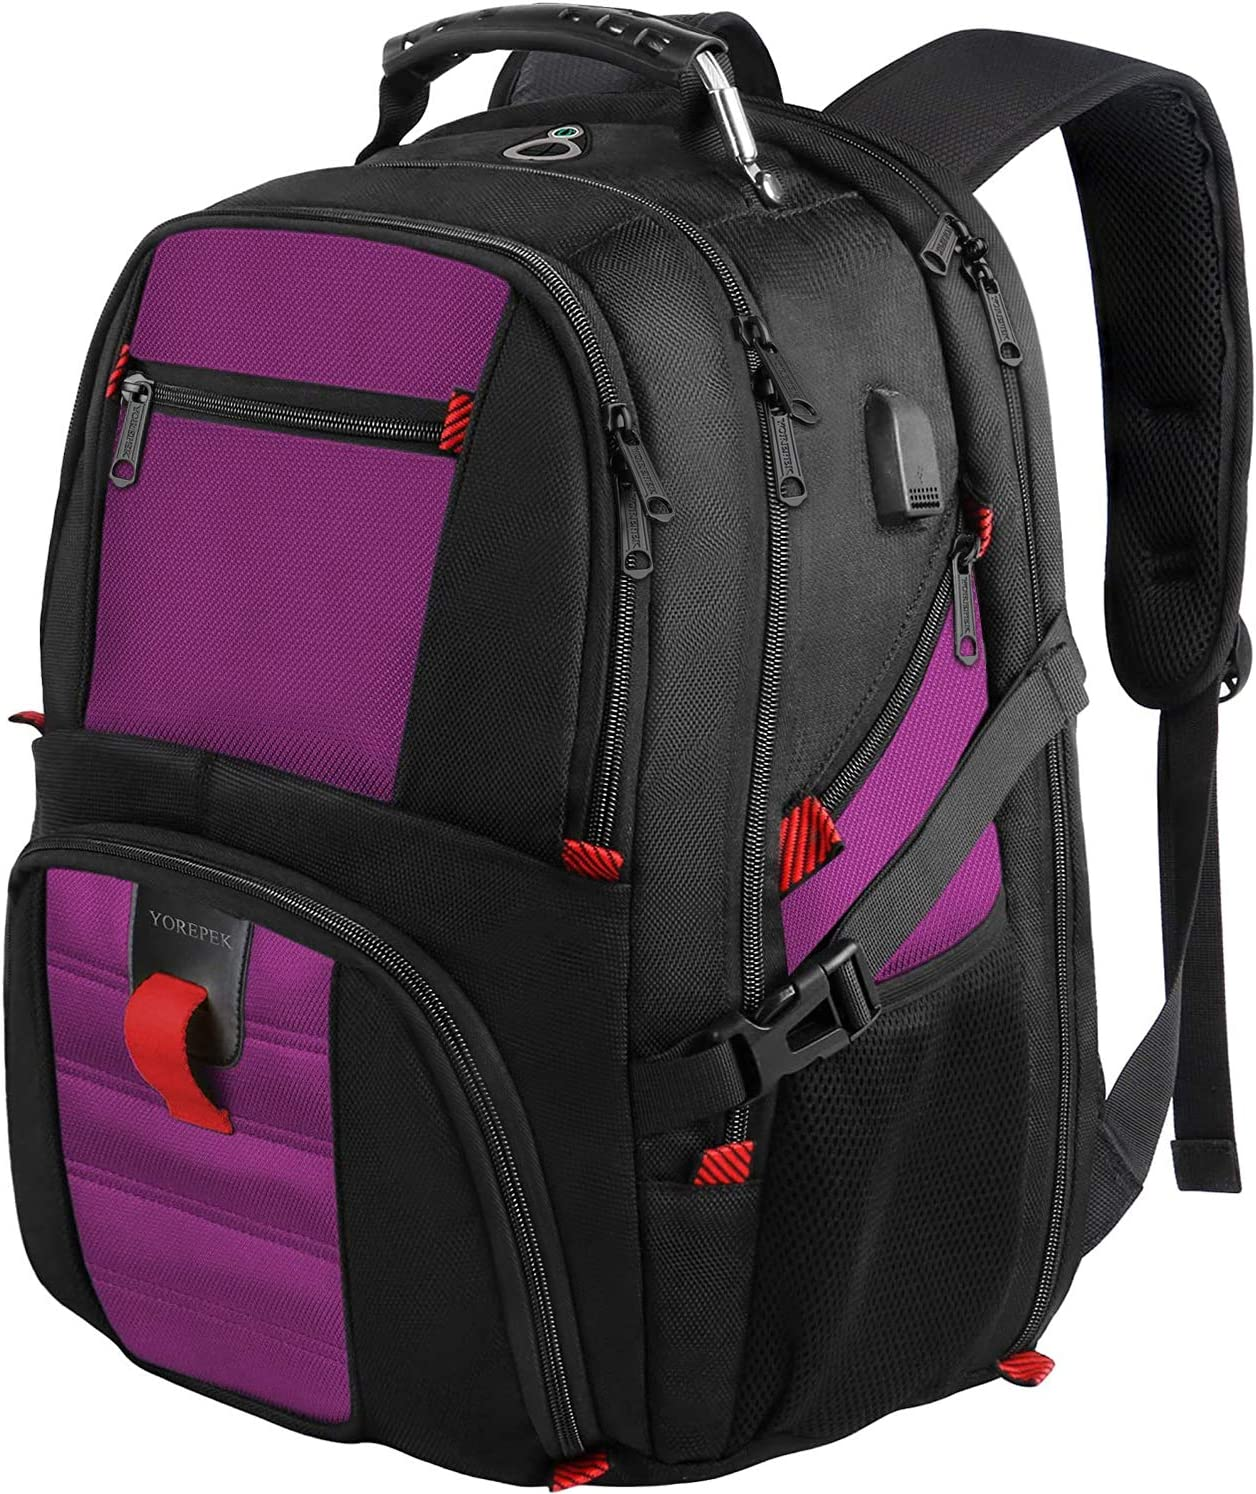 College Backpack, Extra Large Backpacks with USB Charging Port and Luggage Sleeve for Women and Men,TSA Friendly Travel Laptop Backpack,Anti-Theft Business Laptop Backpack Fits 17 Inch Laptops-Purple